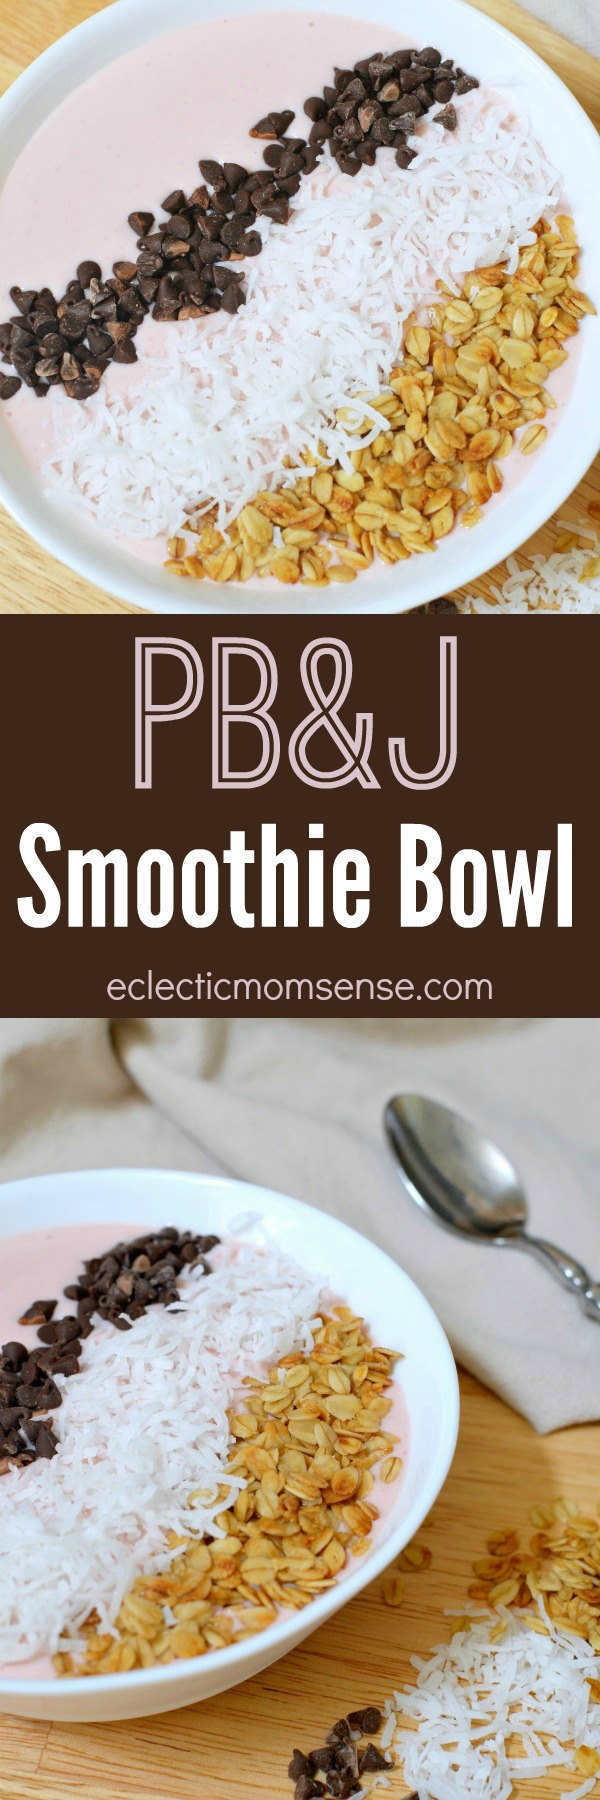 PB&J Smoothie Bowl